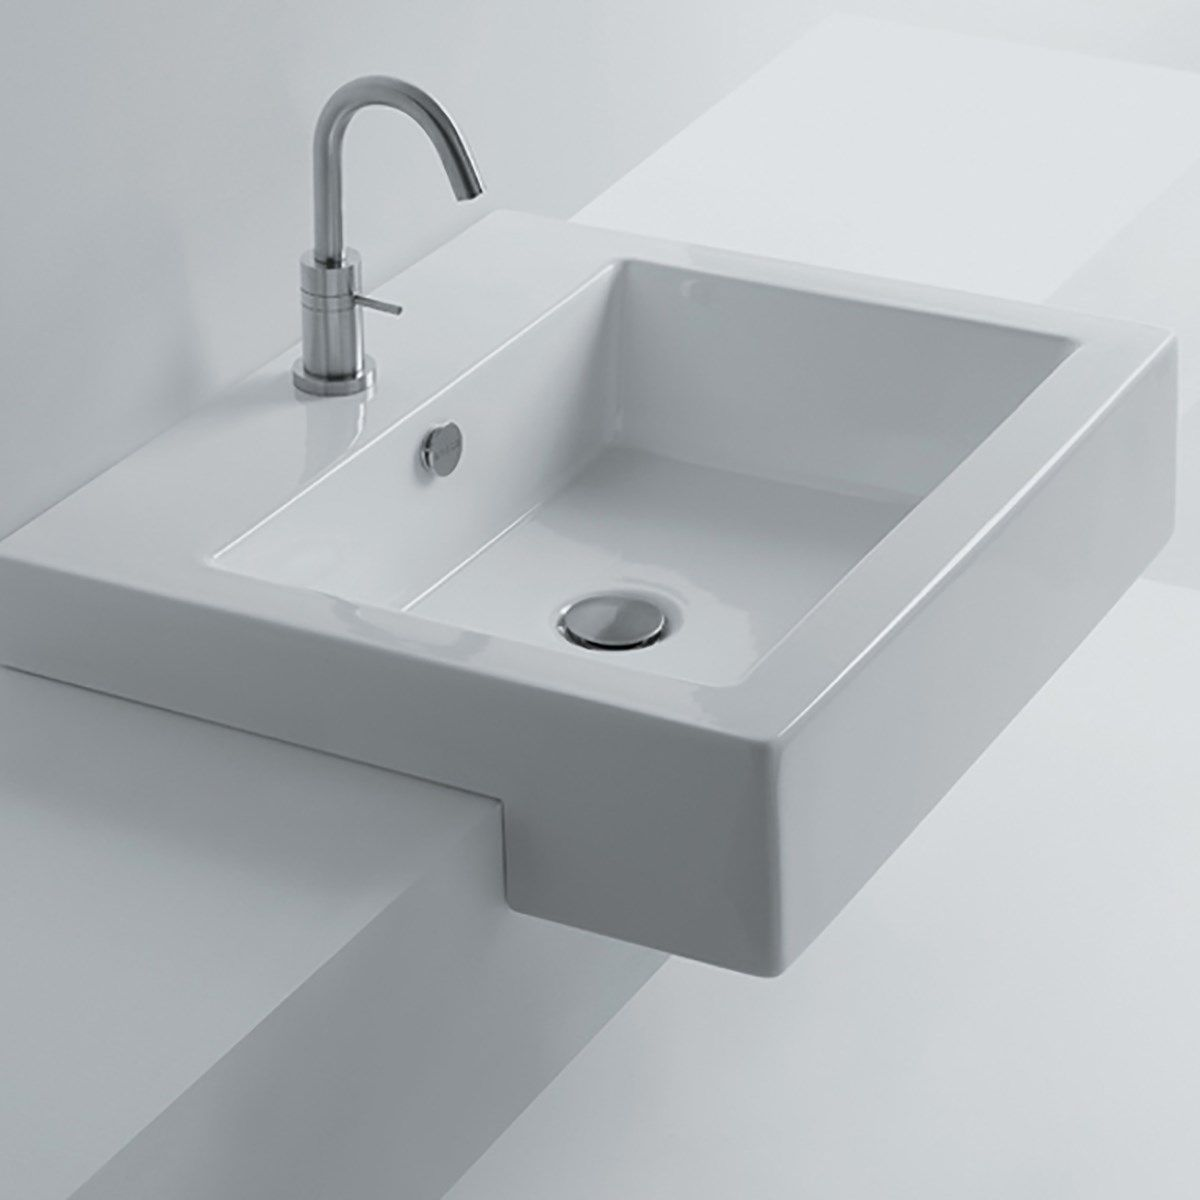 Ws Bath Collections Hox 48s Ws03801f Drop In Bathroom Sinks Bathroom Sink Bathroom Sink Design